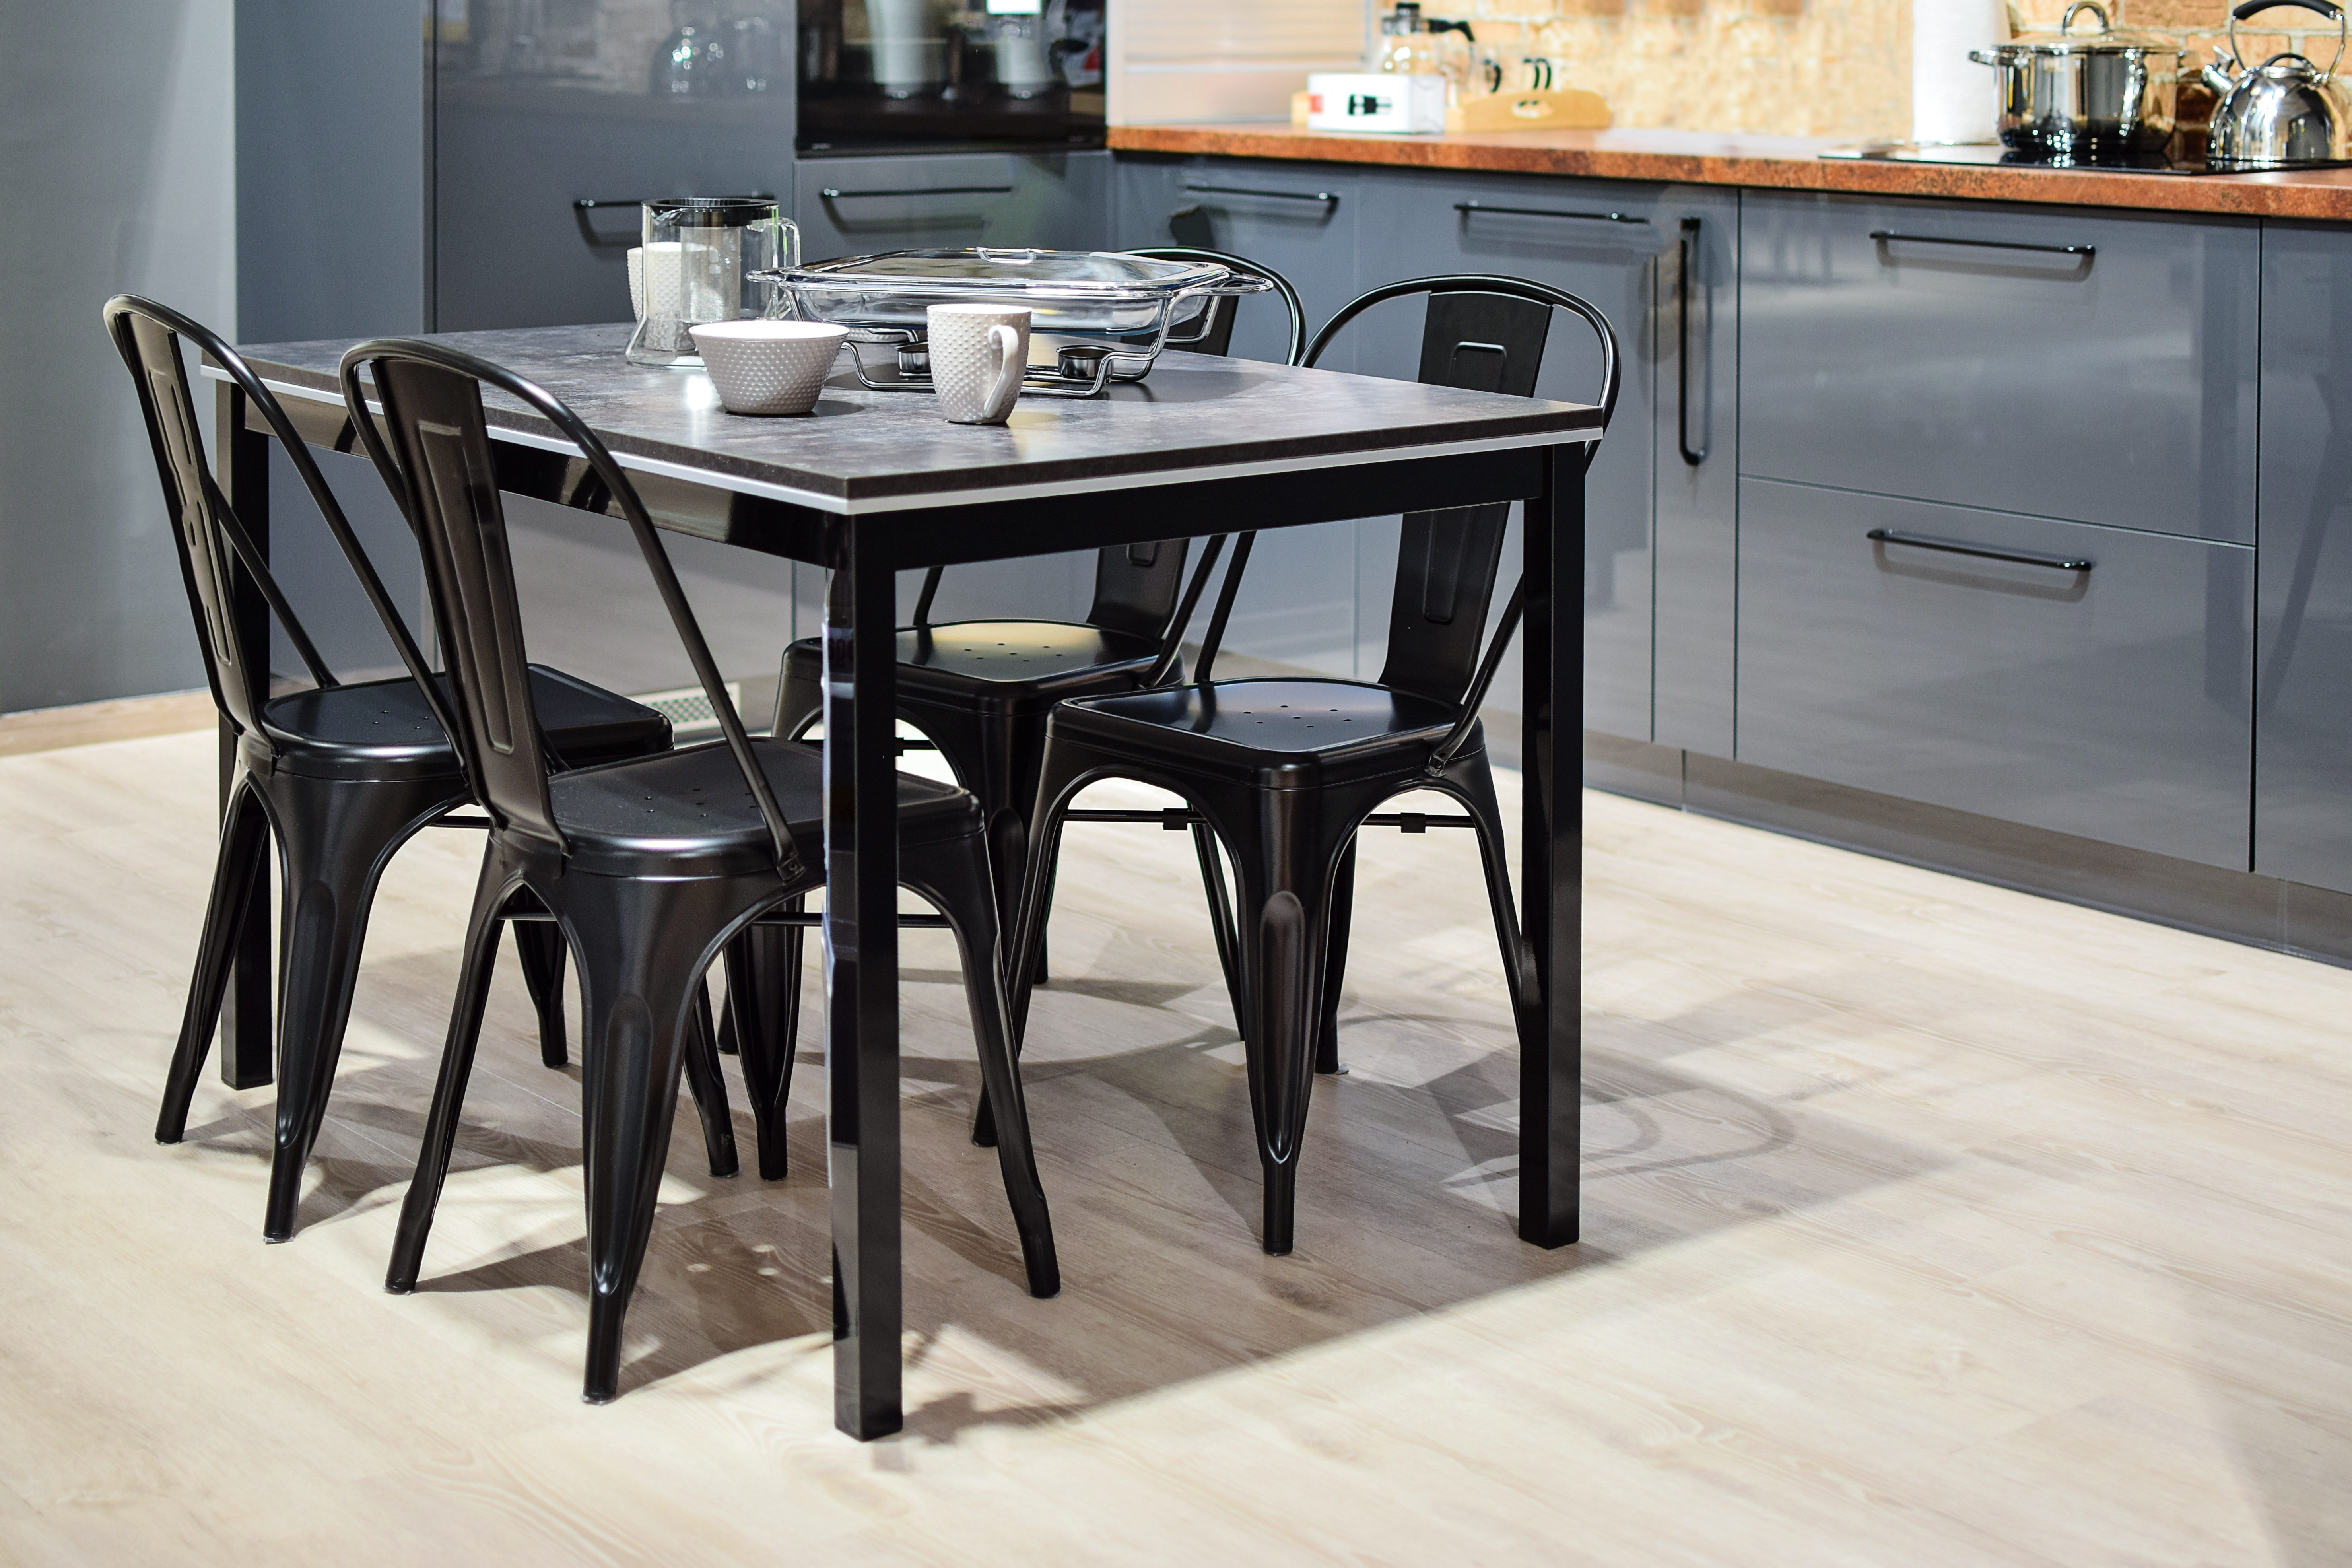 Compact Dining Room Furniture for Small Kitchen Spaces